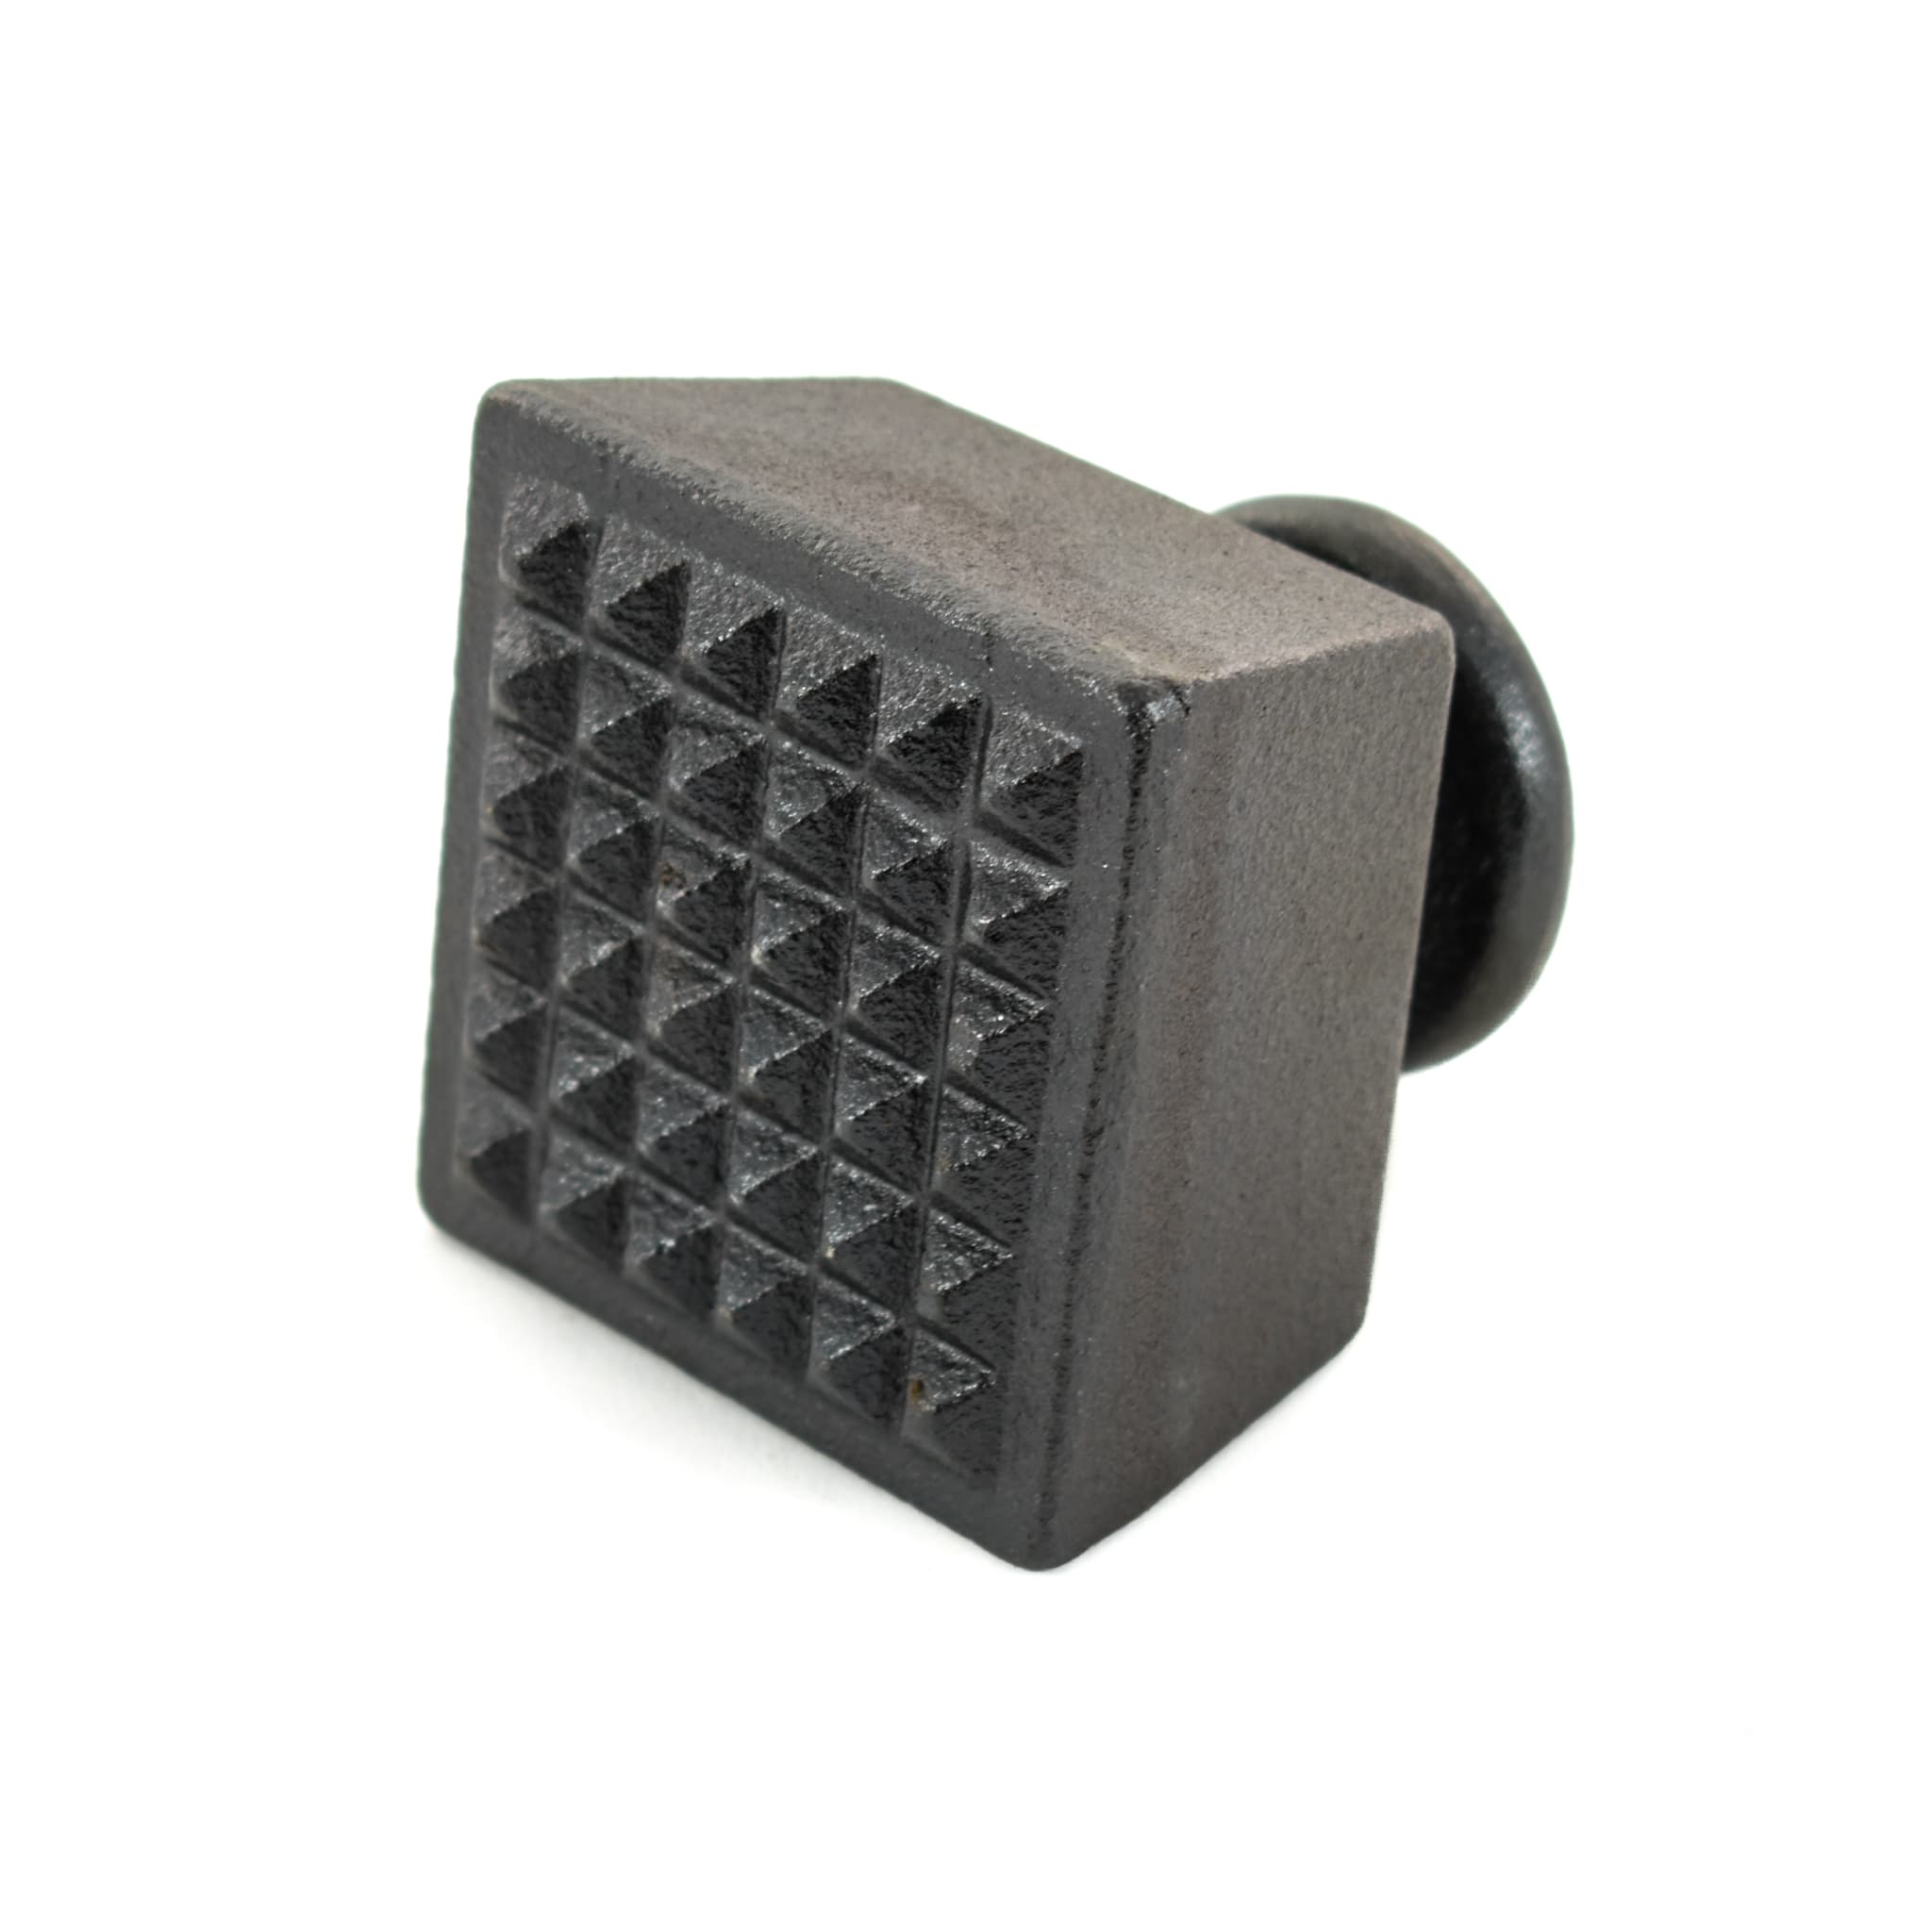 Skeppshult Cast Iron Meat Tenderizer